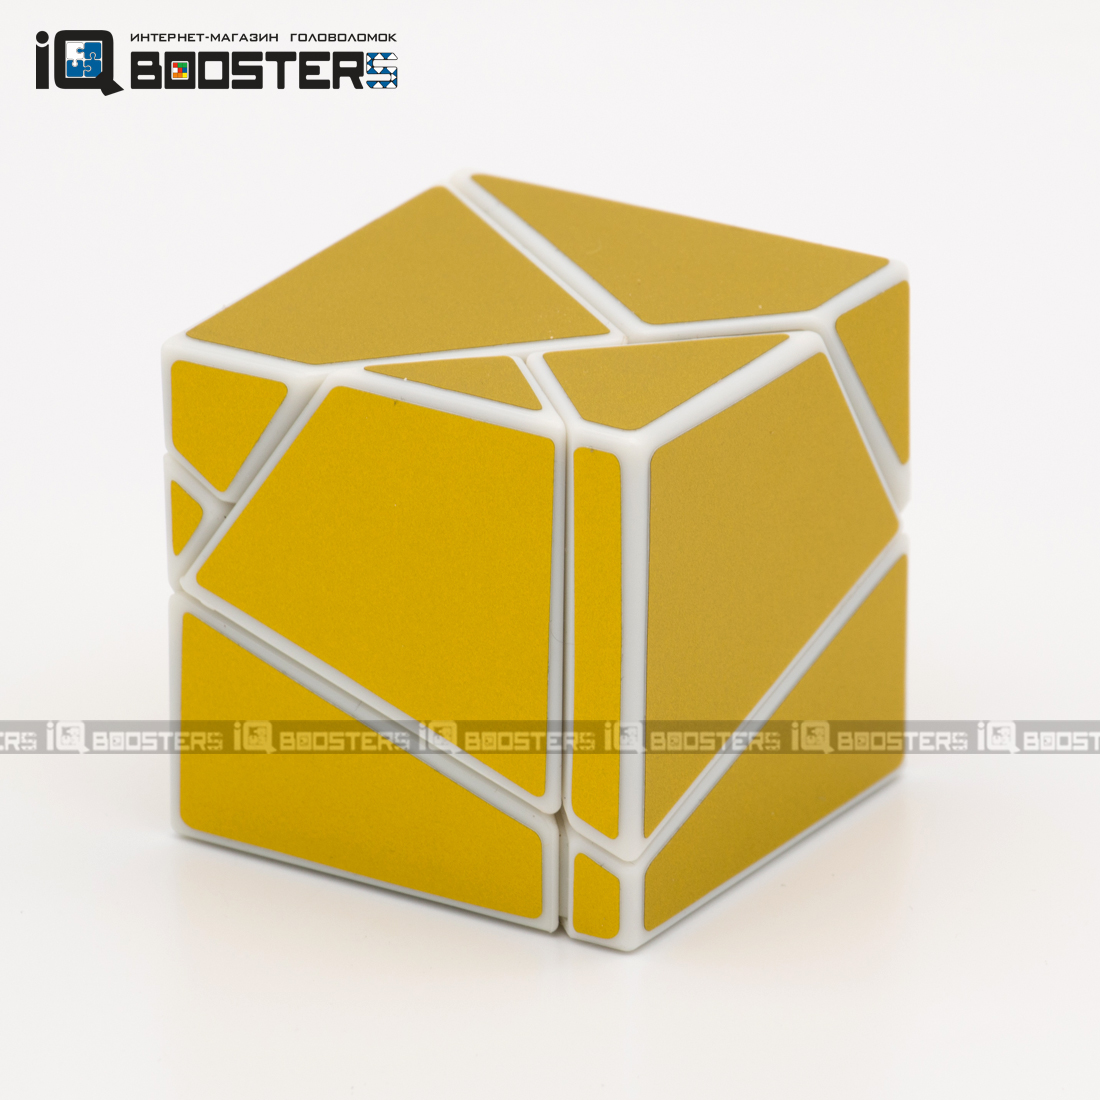 limcube_ghost_2x2_1g